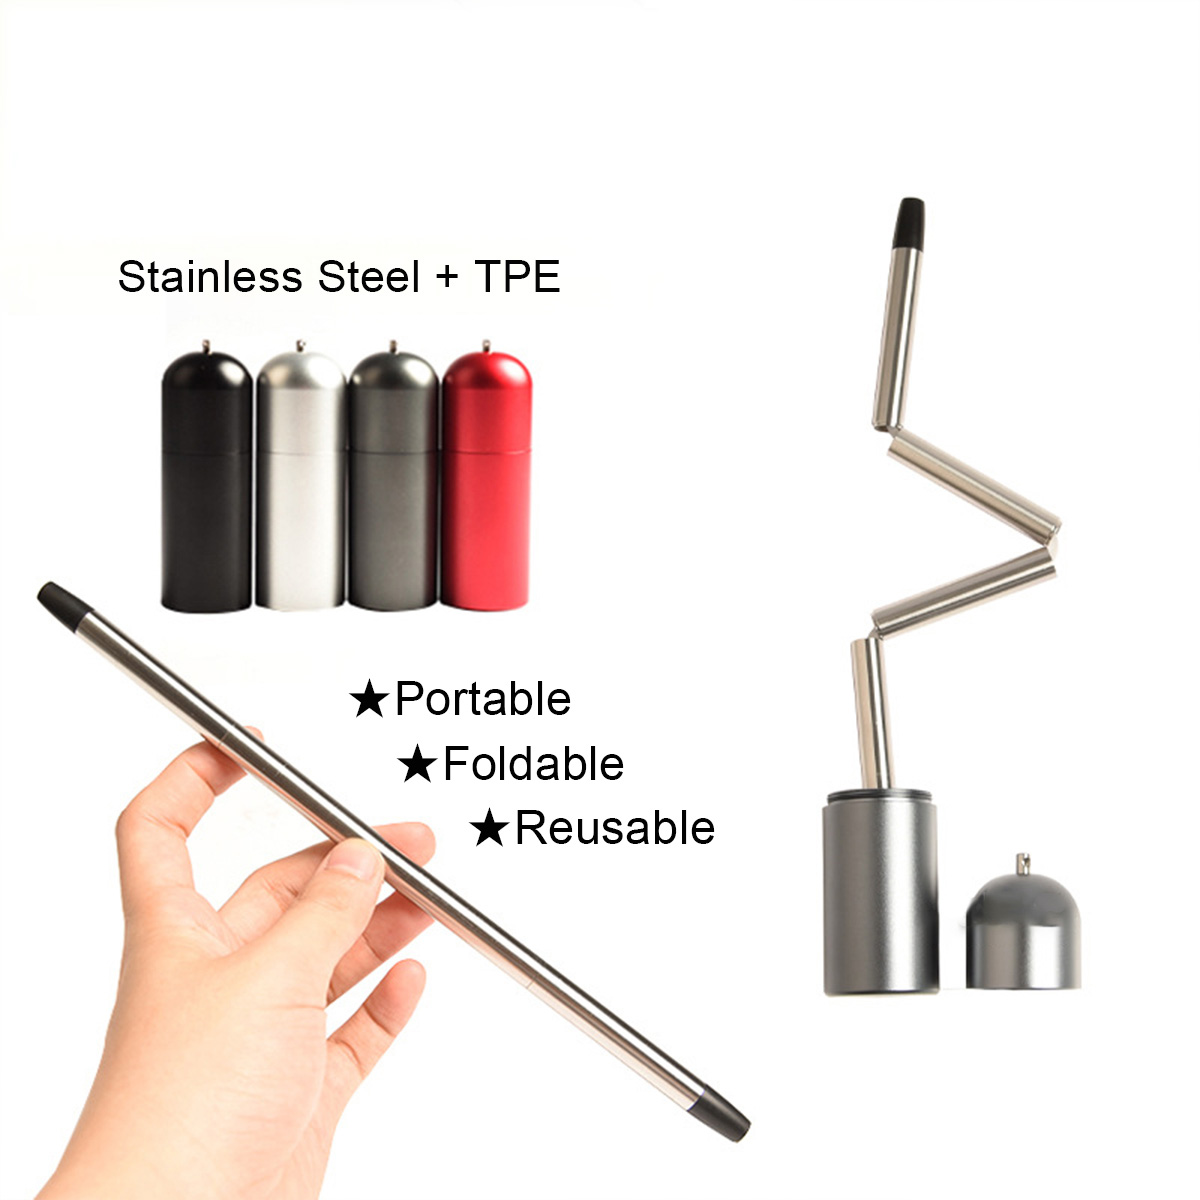 Reusable Straw Stainless Portable Collapsible Travel Outdoor Home Kitchen Bar Accessories Foldable Cup Water Bottle Straws Drinkware Accessory